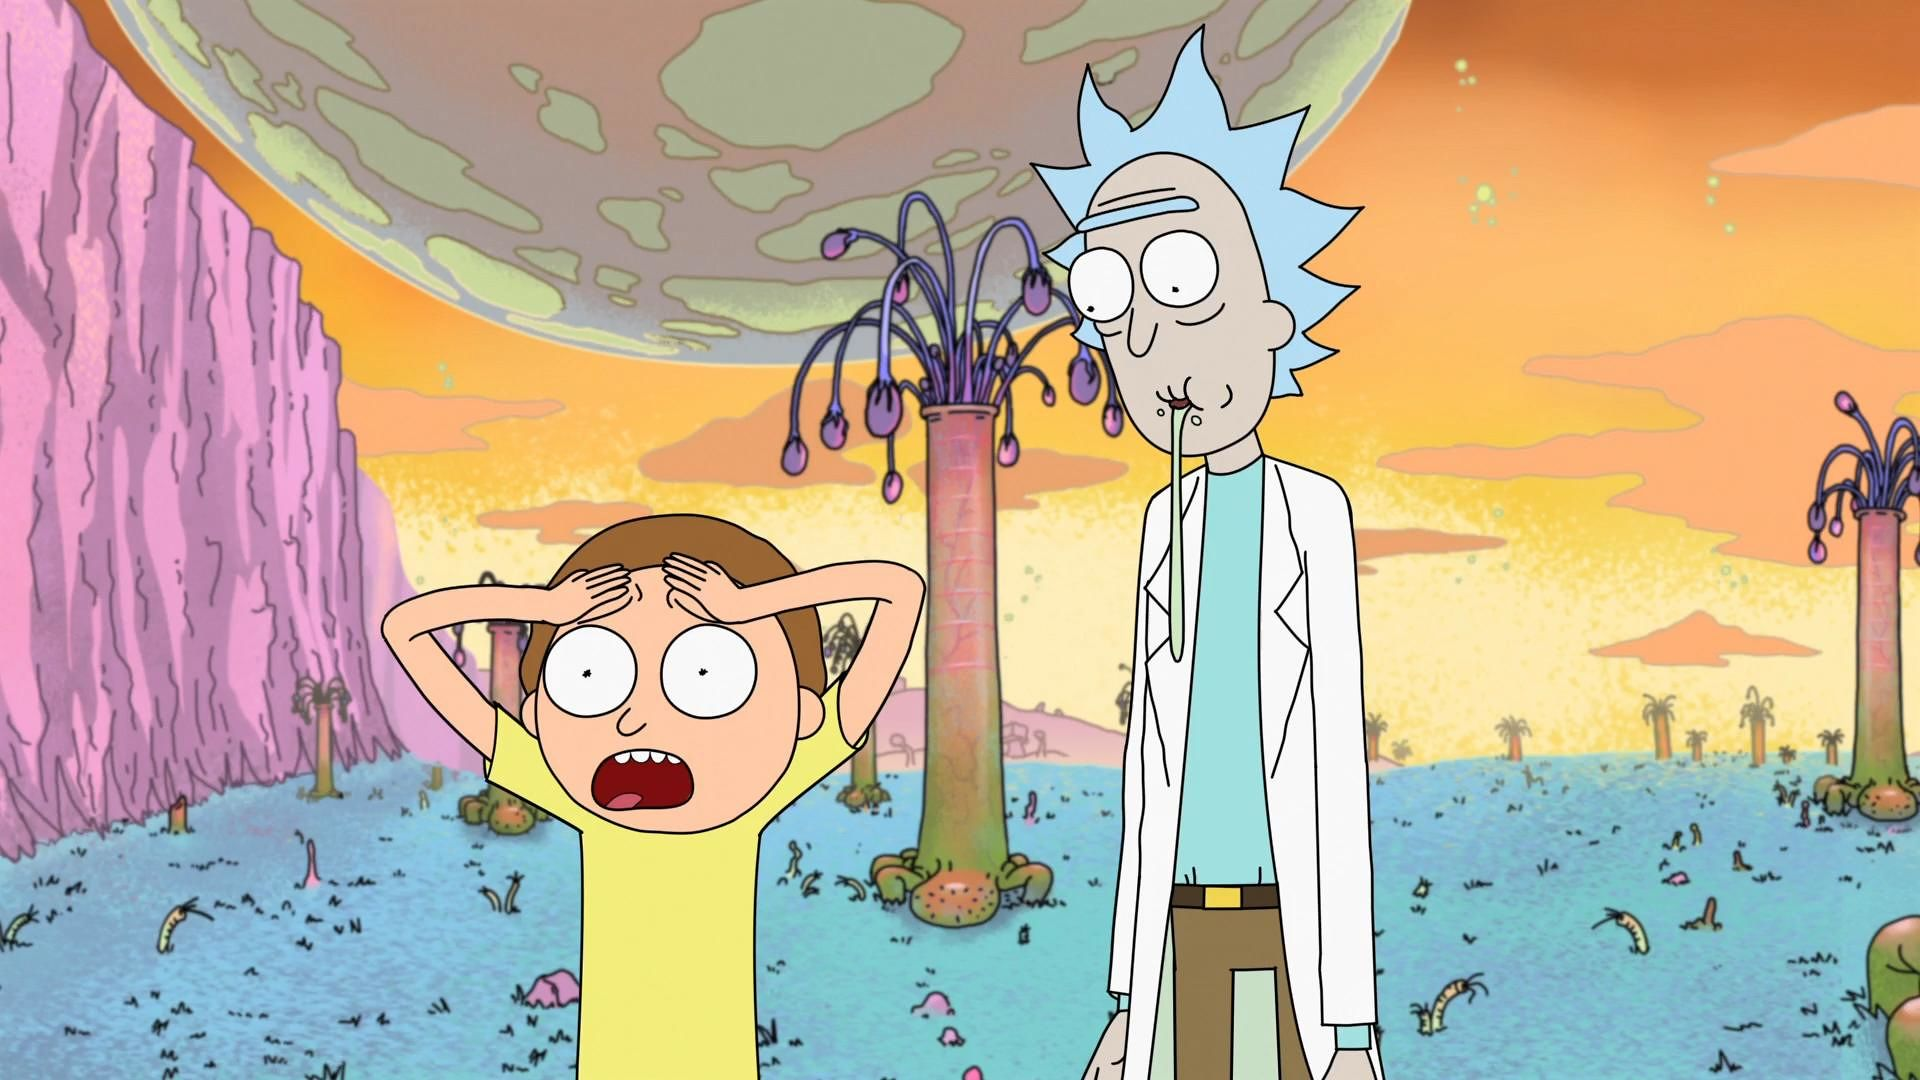 Rick and Morty Season 4 Episode 6 Release Date Delayed as Adult Swim is Changing the Storyline